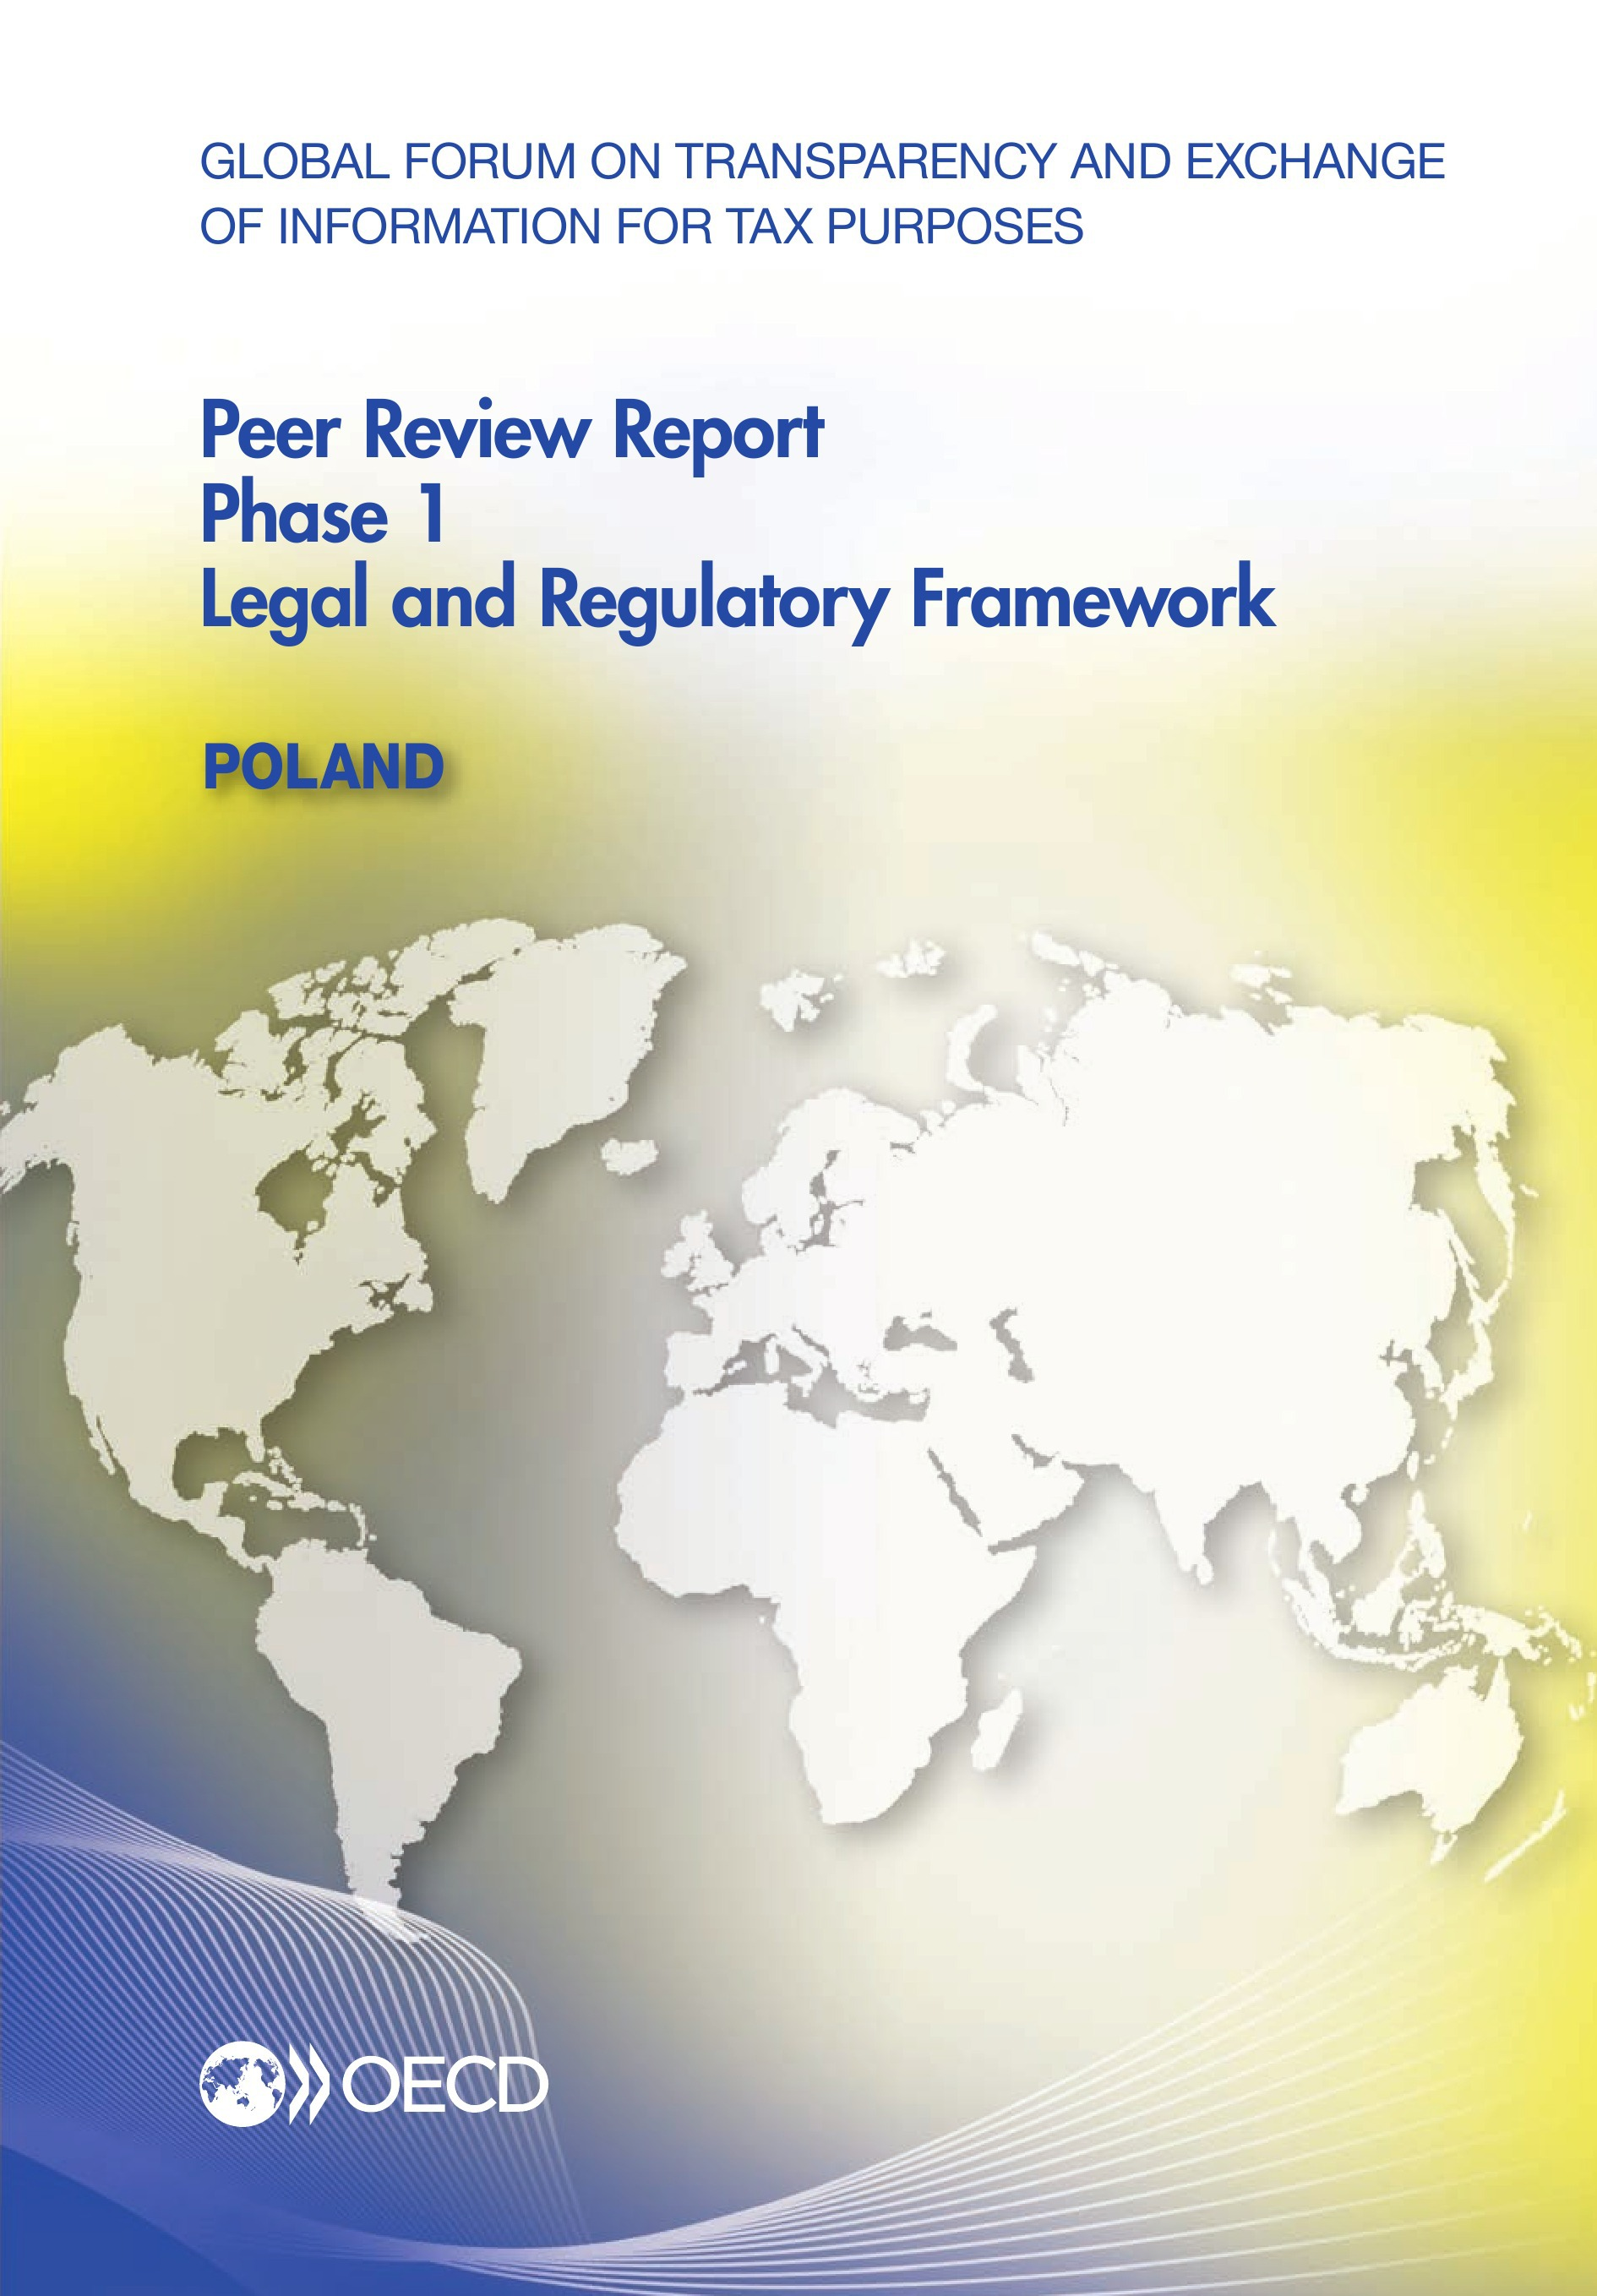 Global Forum on Transparency and Exchange of Information for Tax Purposes Peer Reviews: Poland 2013